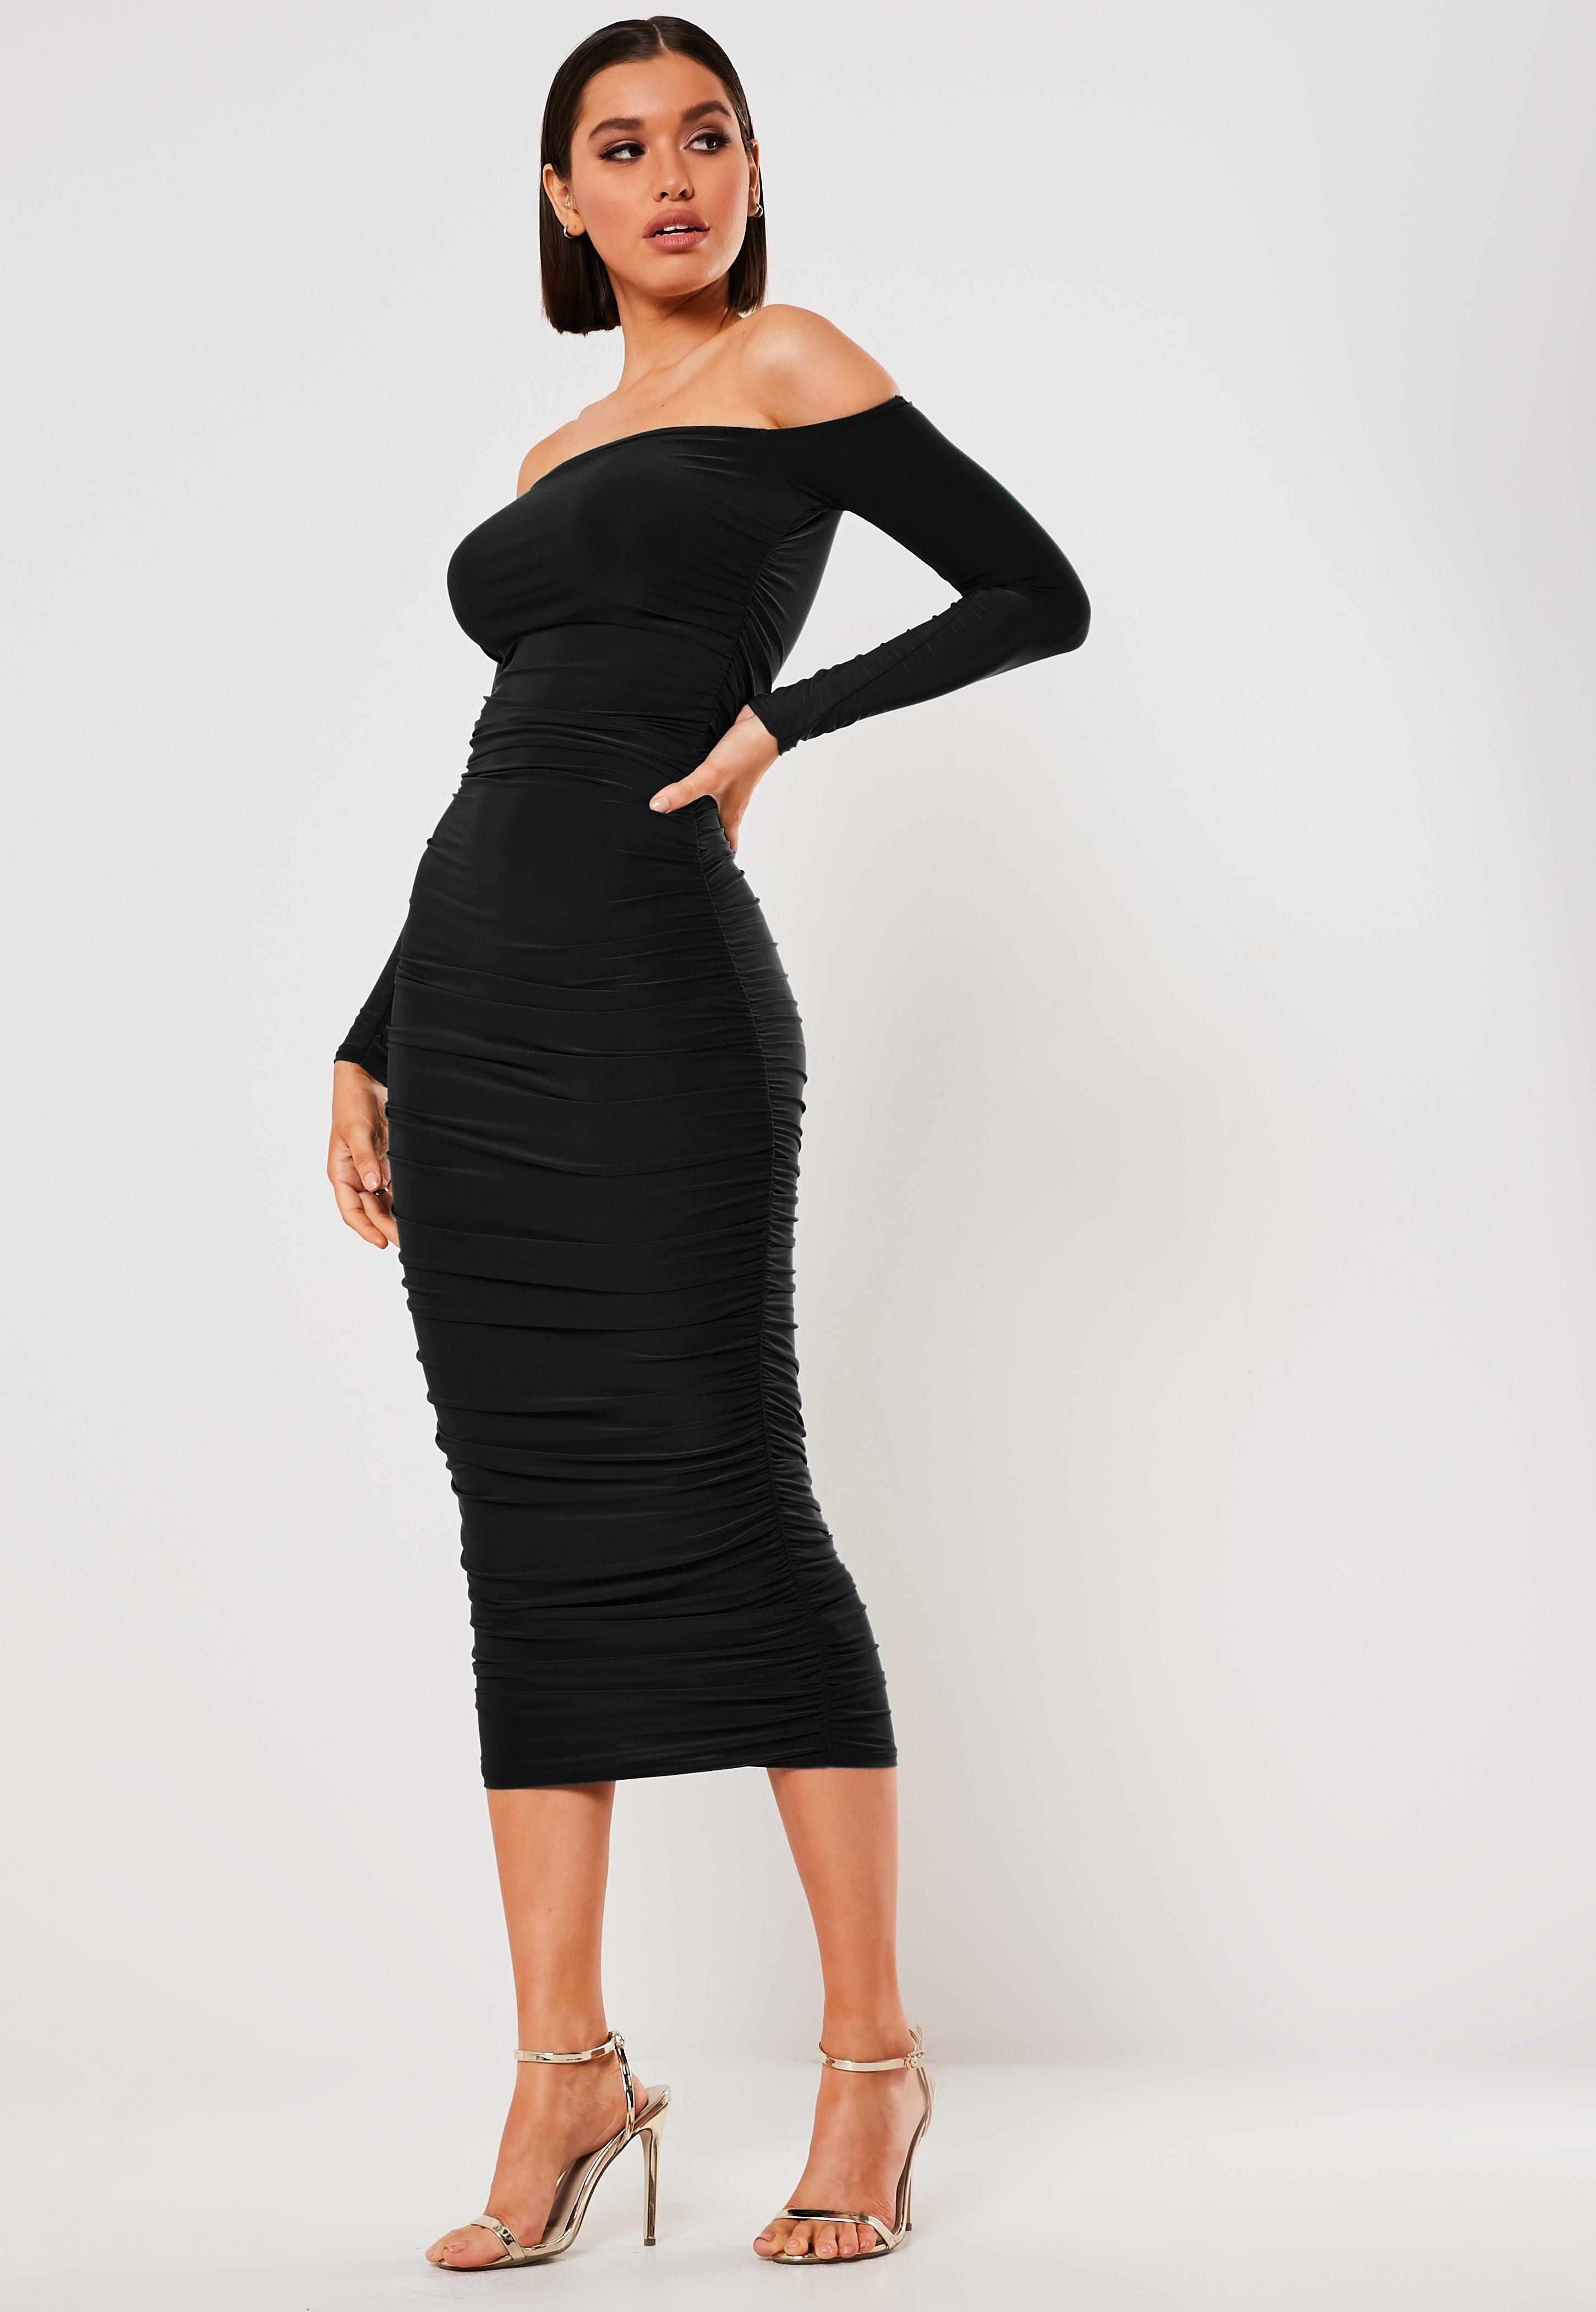 7eab79d9afd4 Black Bardot Slinky Ruched Bodycon Midaxi Dress | Missguided